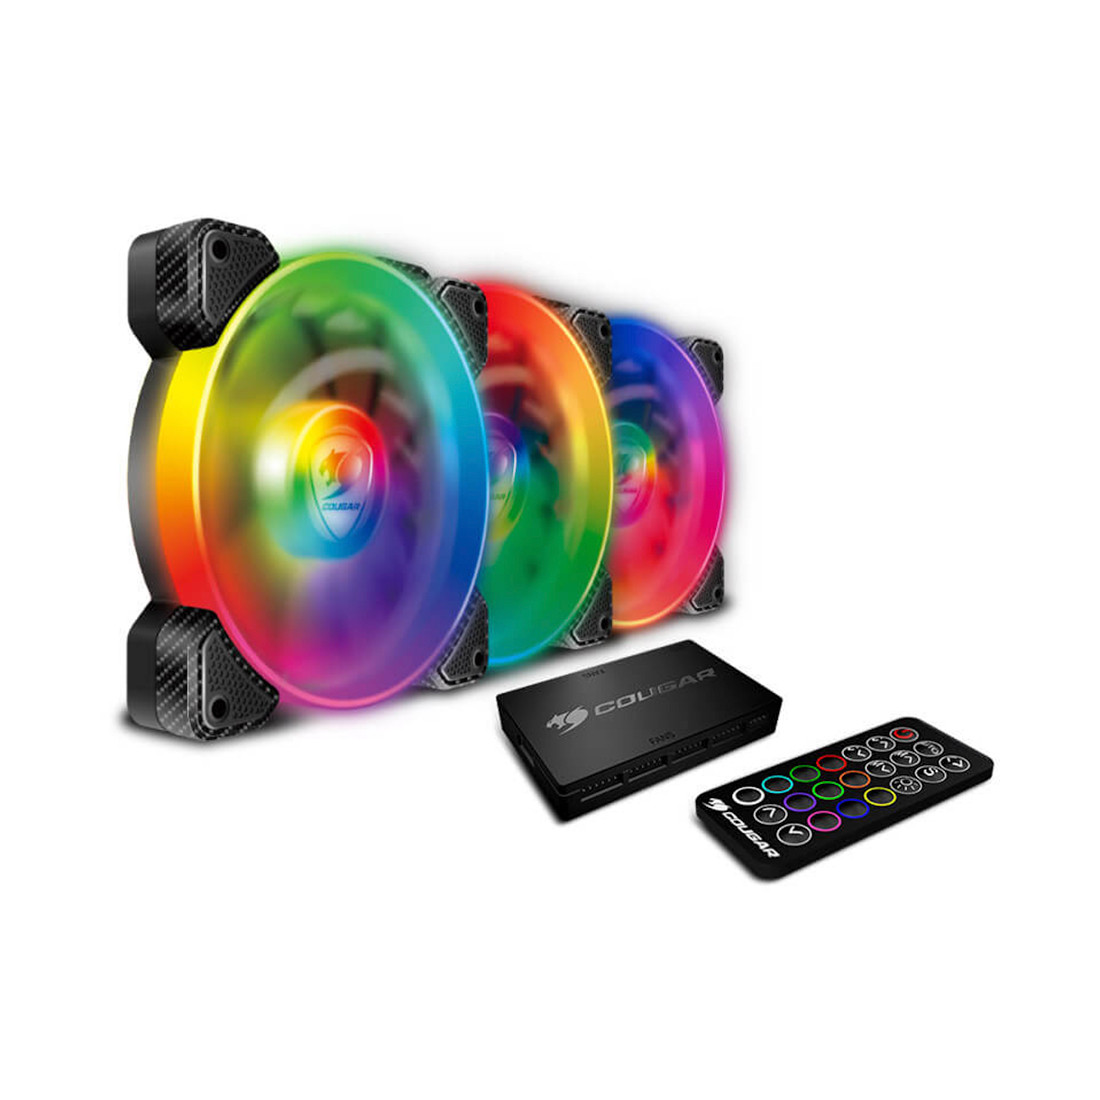 Комплект кулеров для компьютерного корпуса Cougar VORTEX SPB RGB COOLING KIT - 3 в1